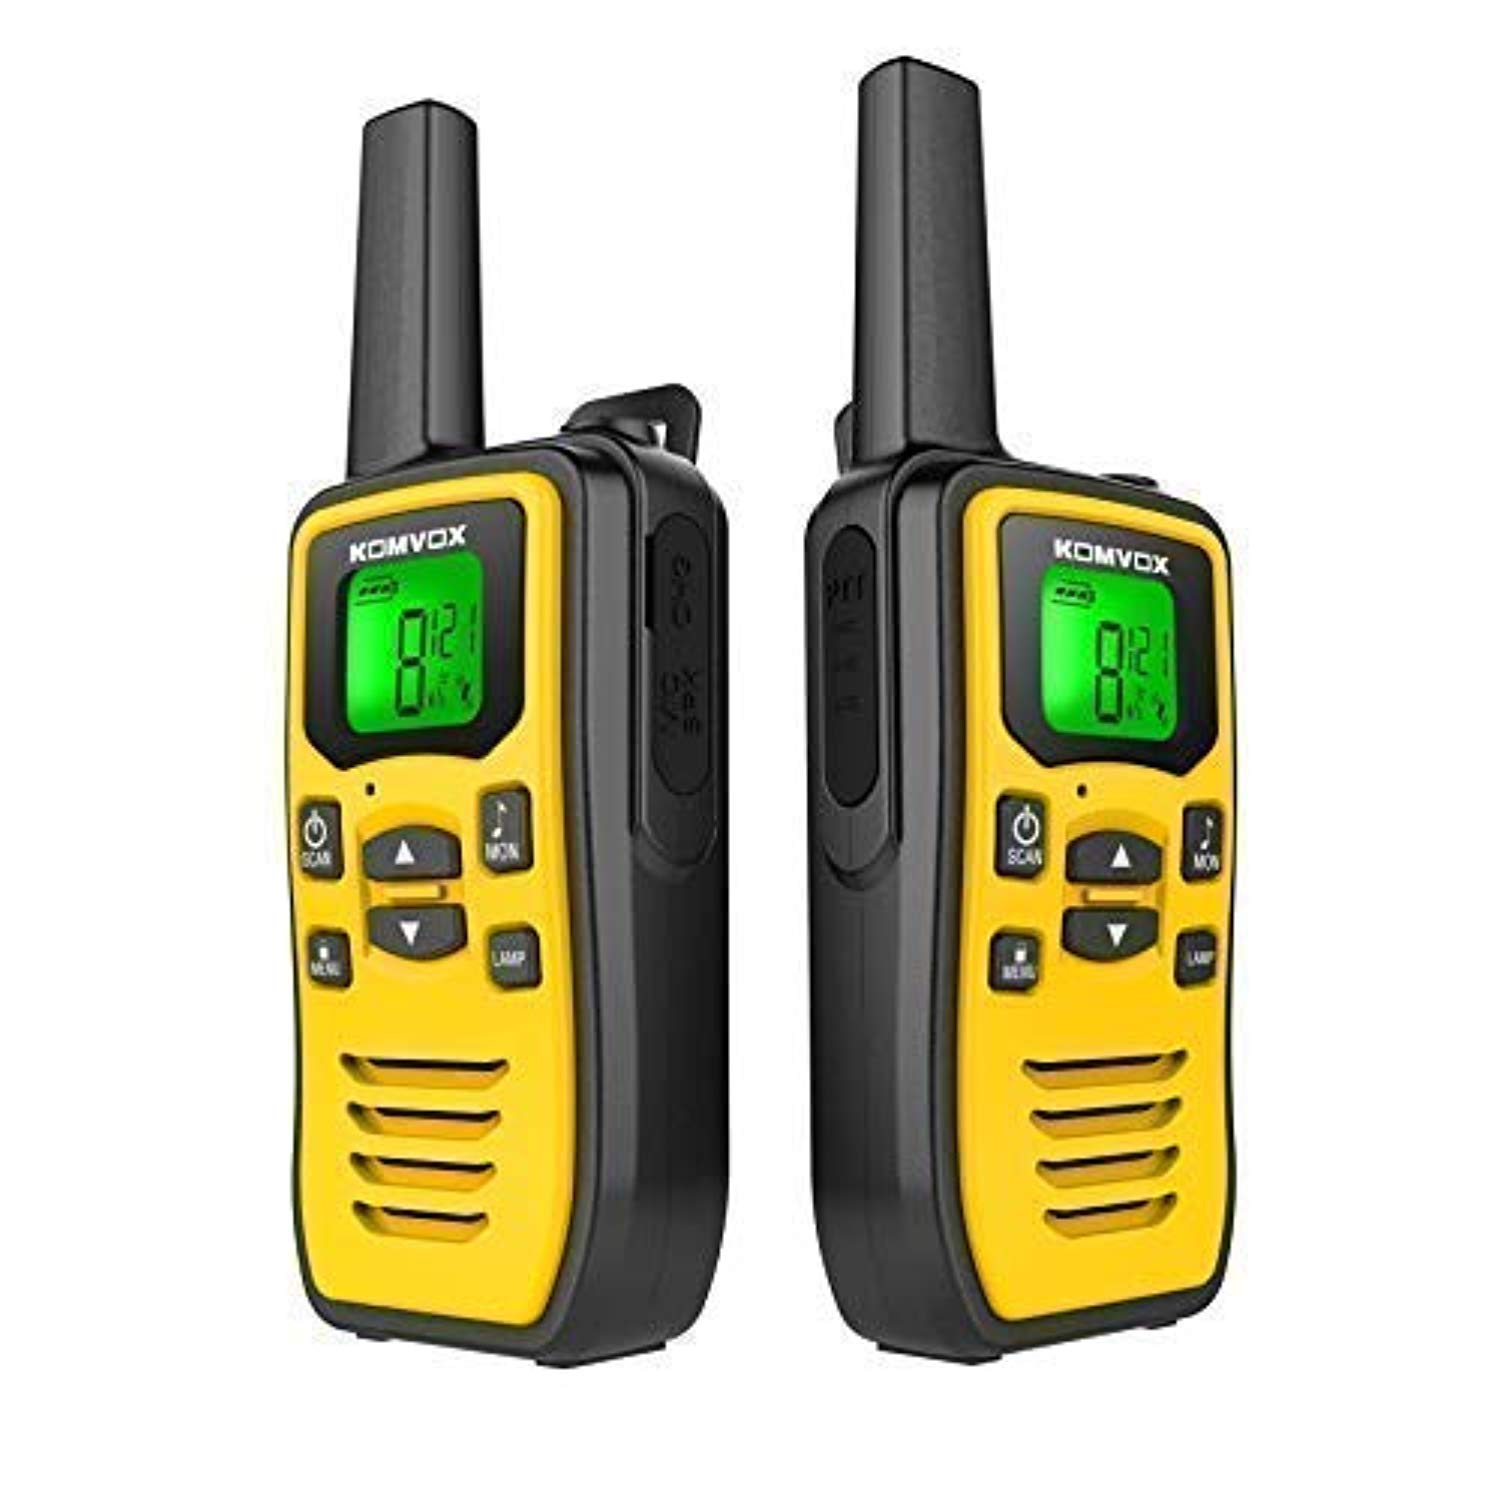 Mirkit Radio UV-5R MK4 8W MP Max Power 2019 1800 mAh Li-Ion